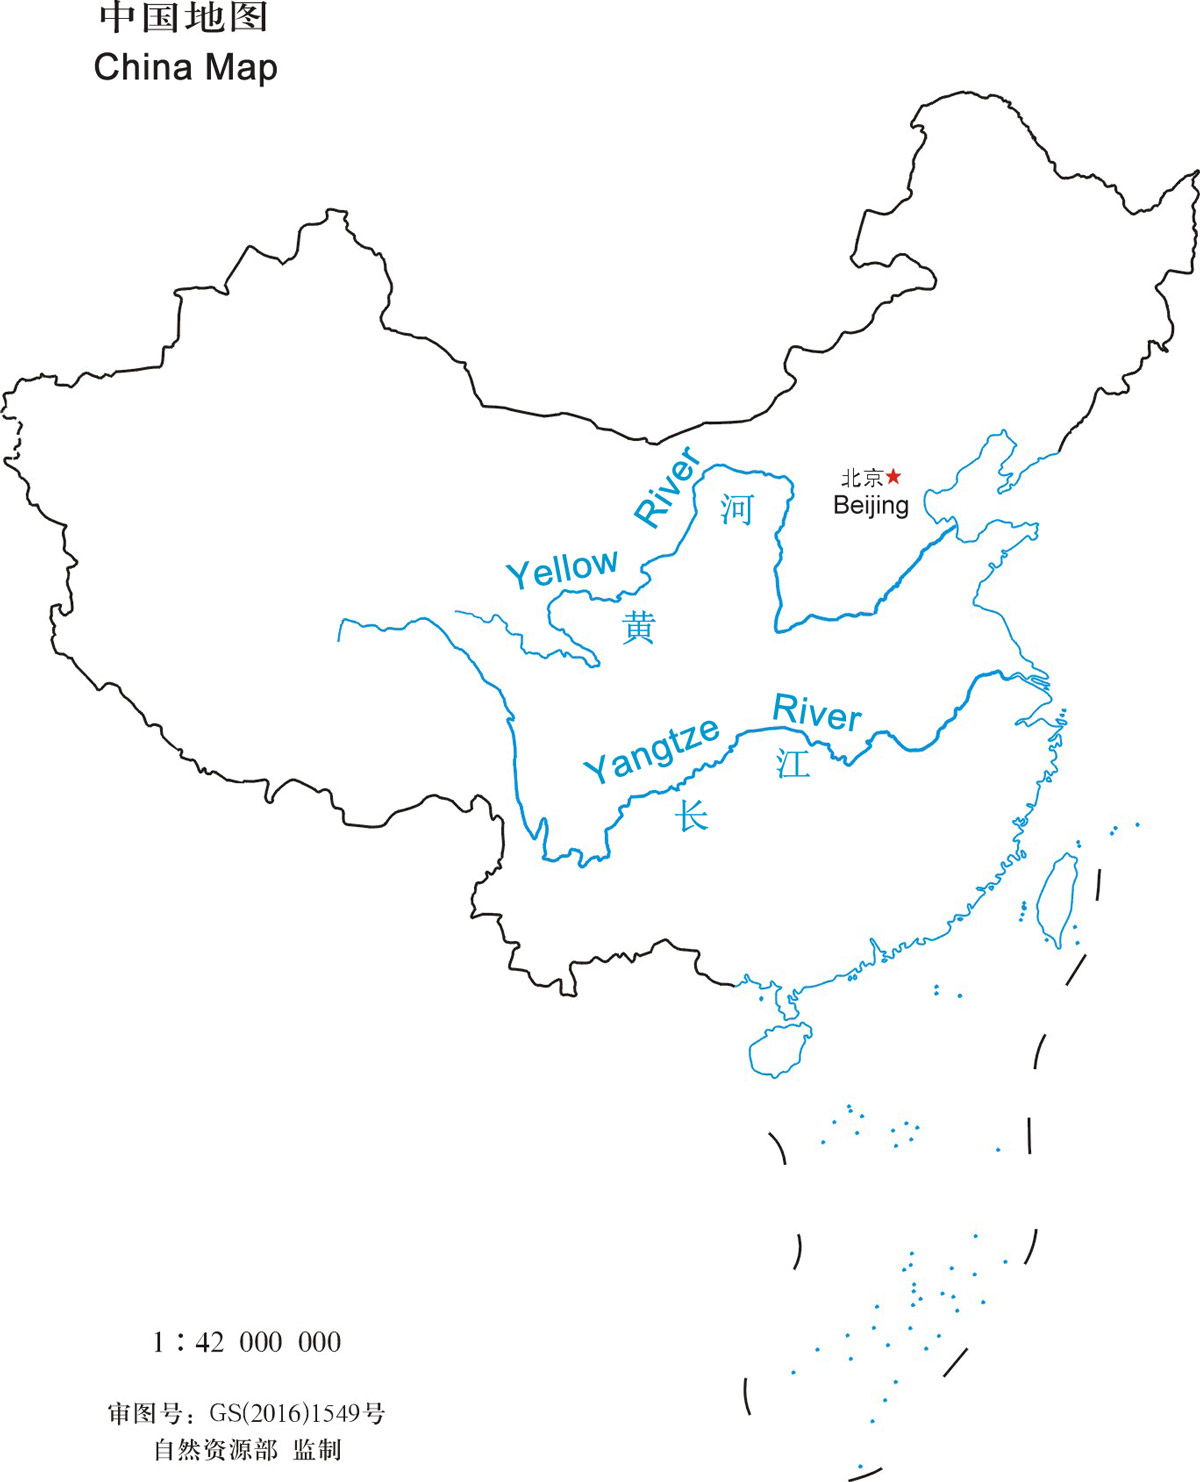 Rivers Map Of China.China Rivers Map 2019 Important Rivers In China